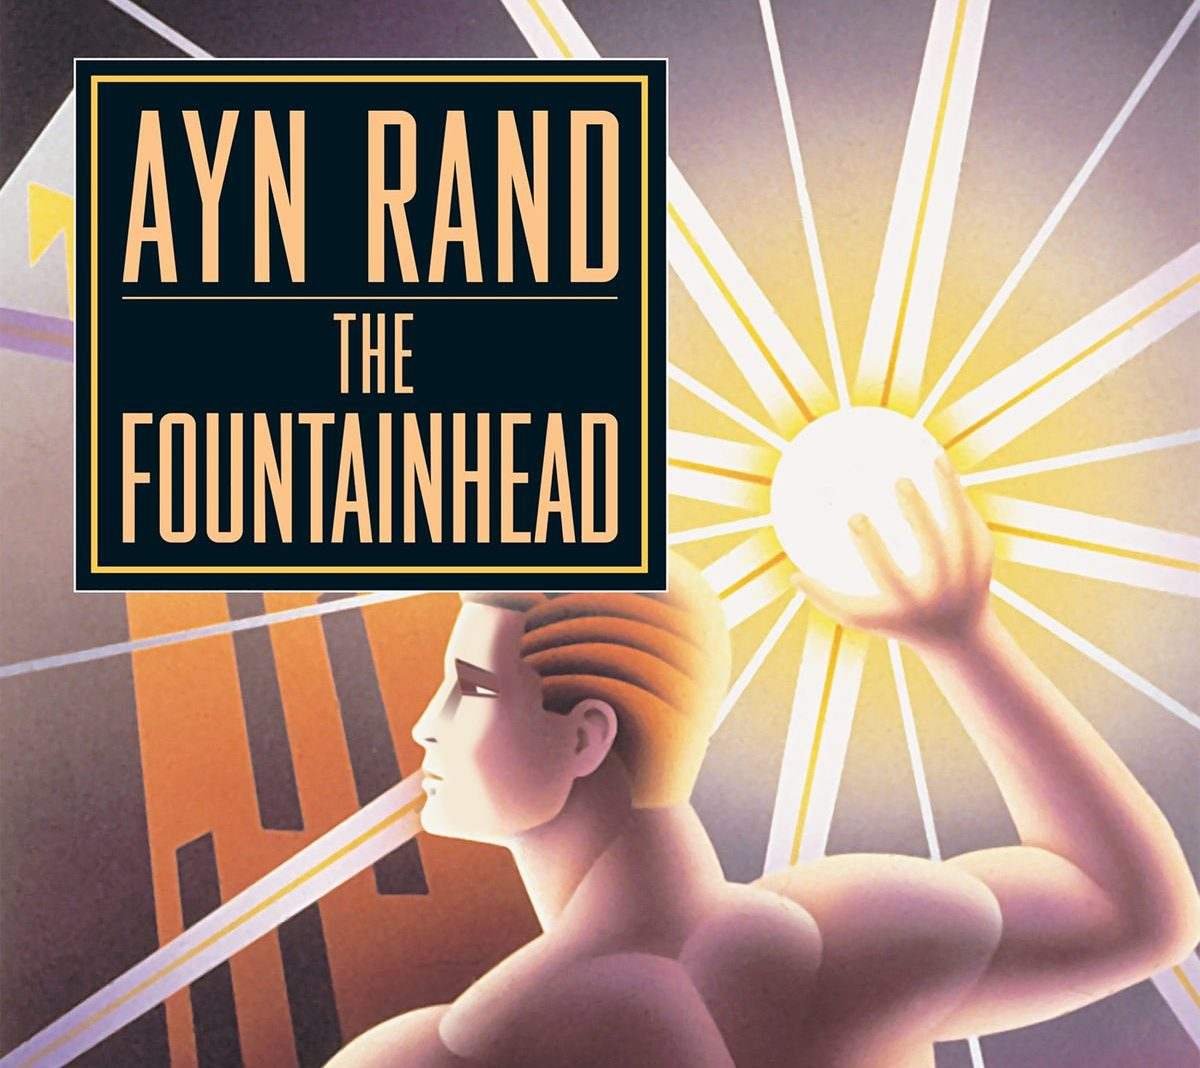 the fountainhead 7 e1610447621957 20 Things You Probably Never Knew About Rush